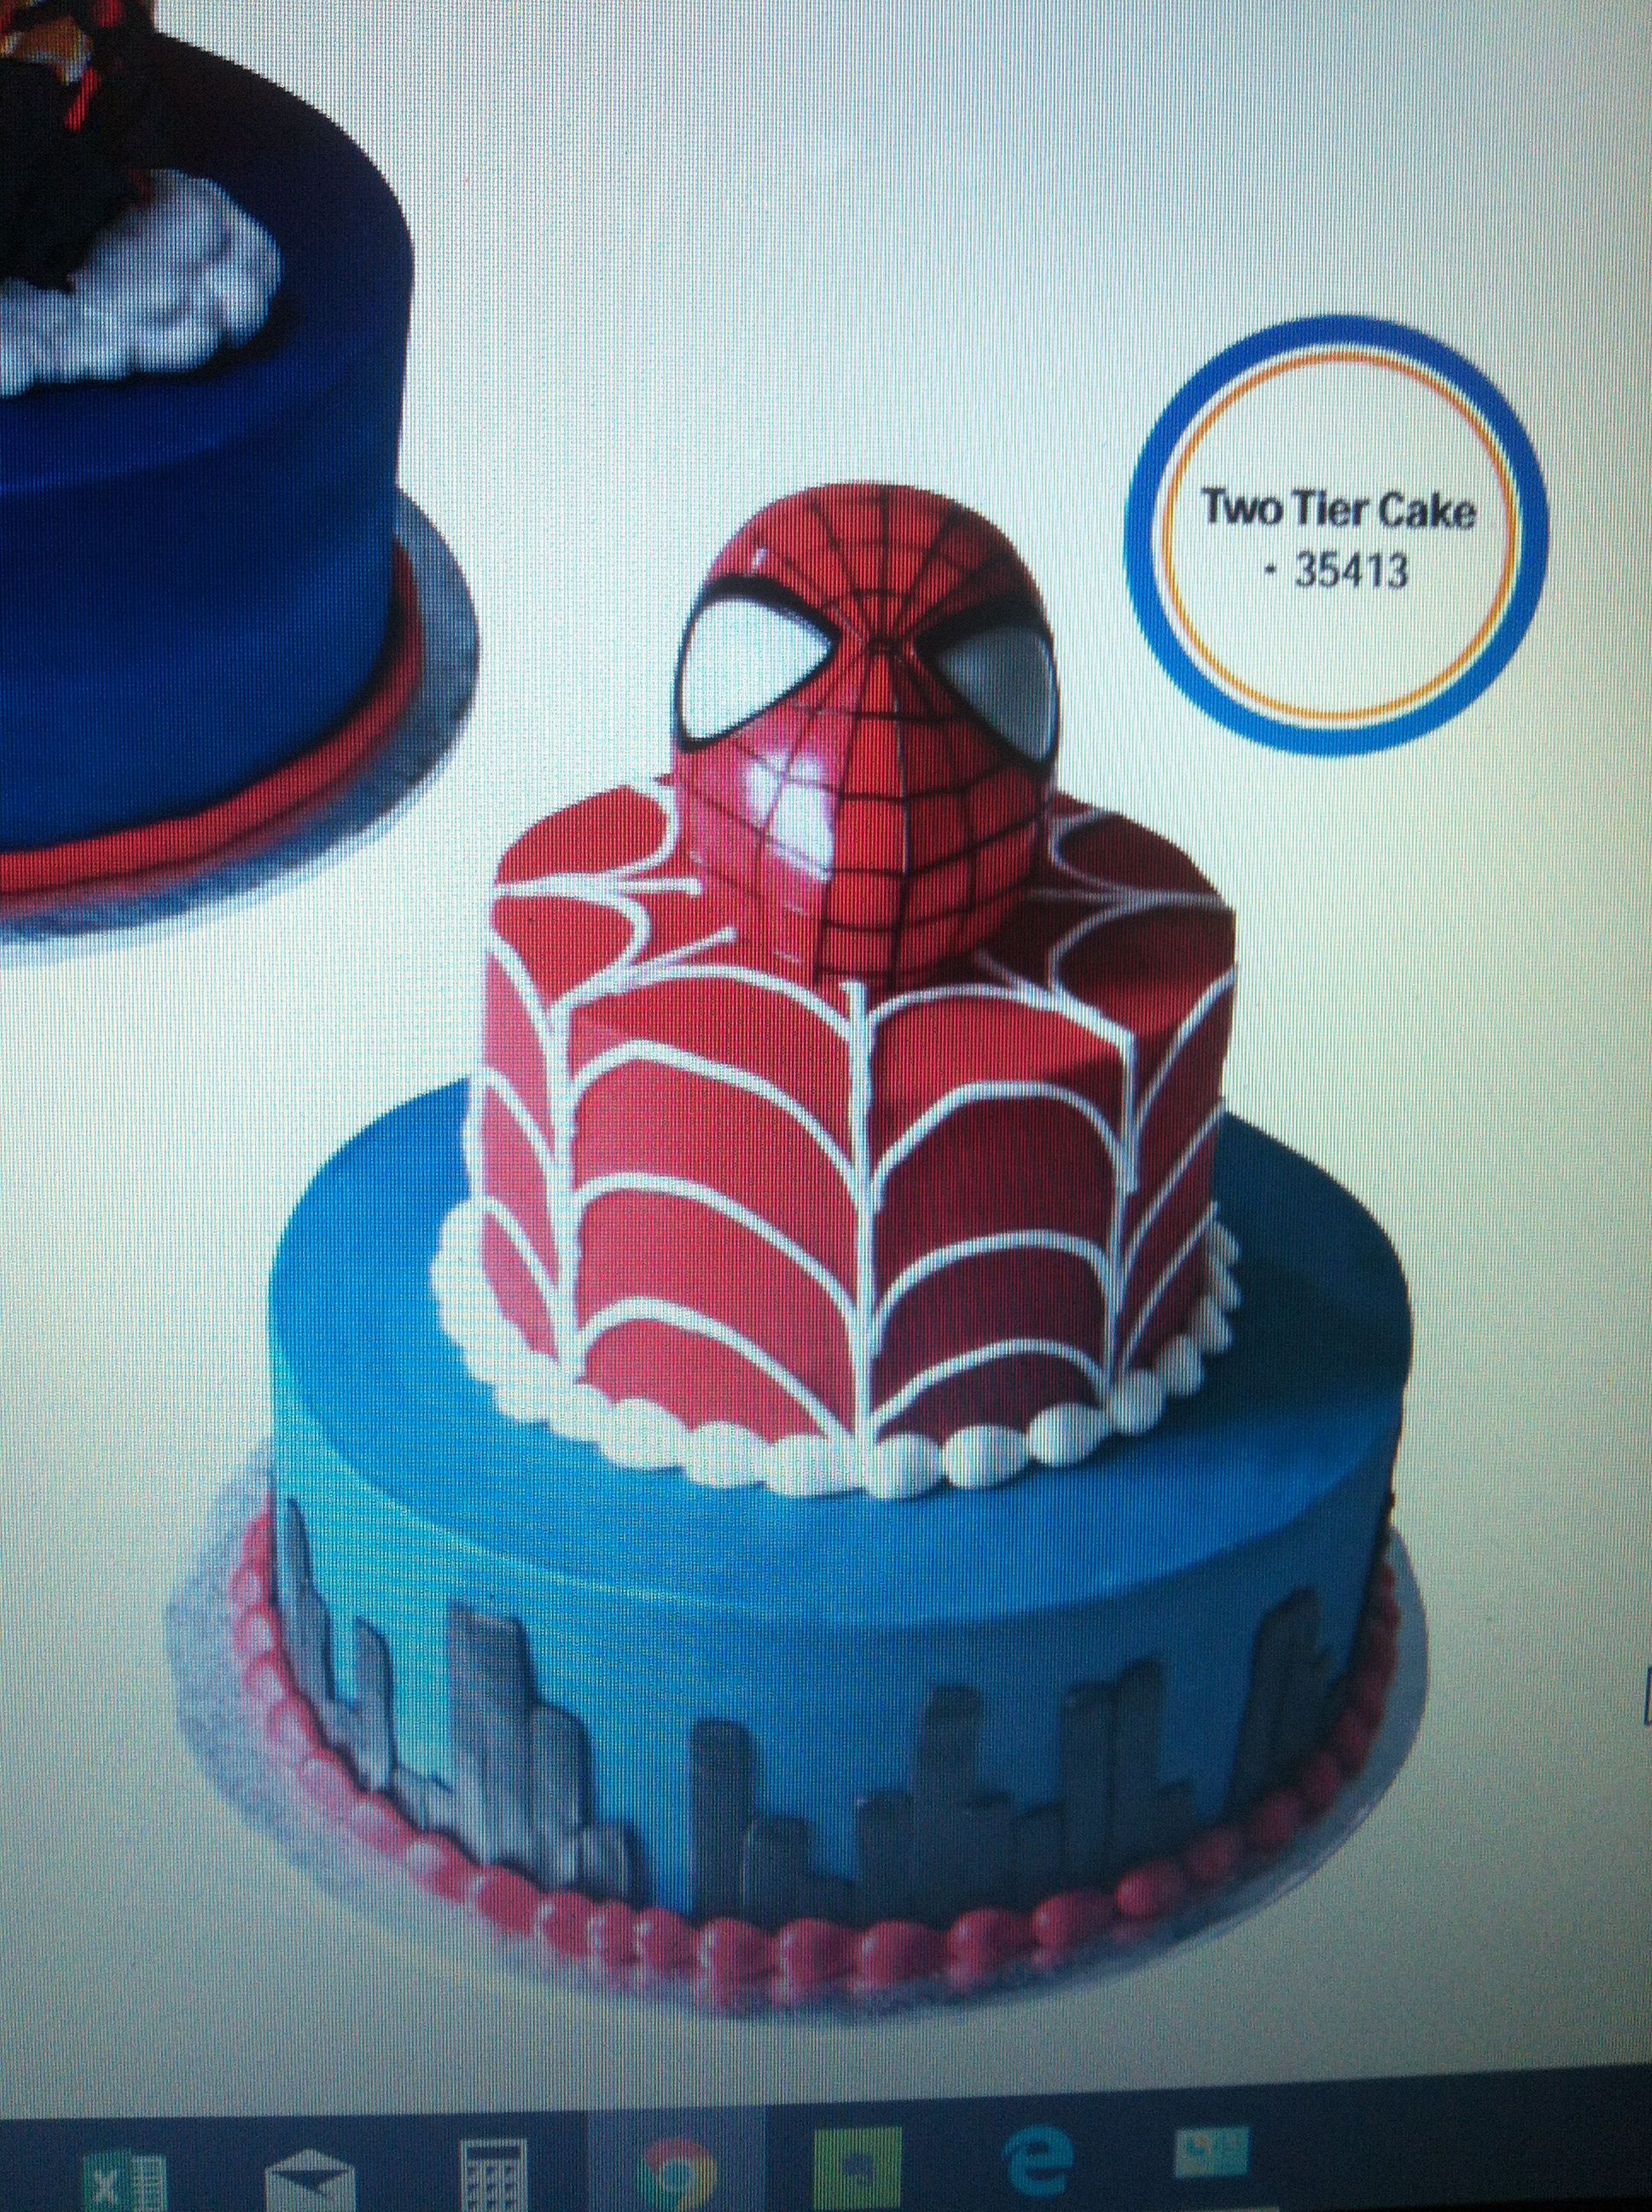 Miraculous Two Tired Cake From Walmart Spiderman Great Colors Just Add Personalised Birthday Cards Cominlily Jamesorg